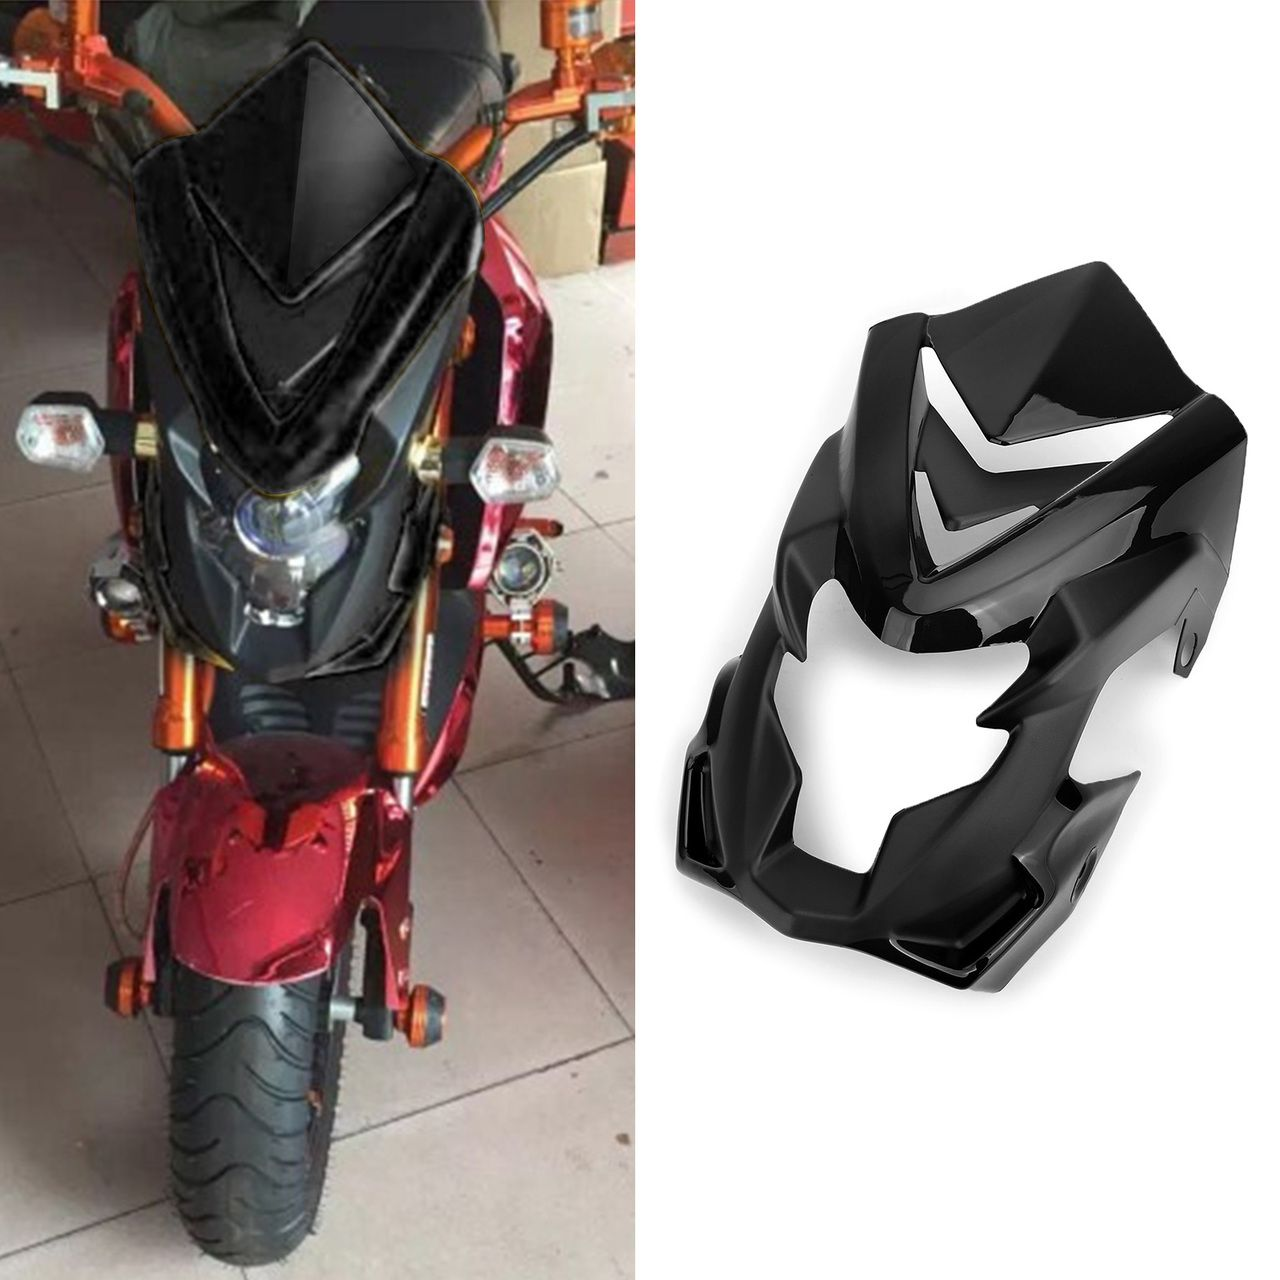 Abs Windshield Headlight Cover Fairing For Honda Msx125sf 16 17 Msx125 13 16 Black Headlight Covers Honda Windshield